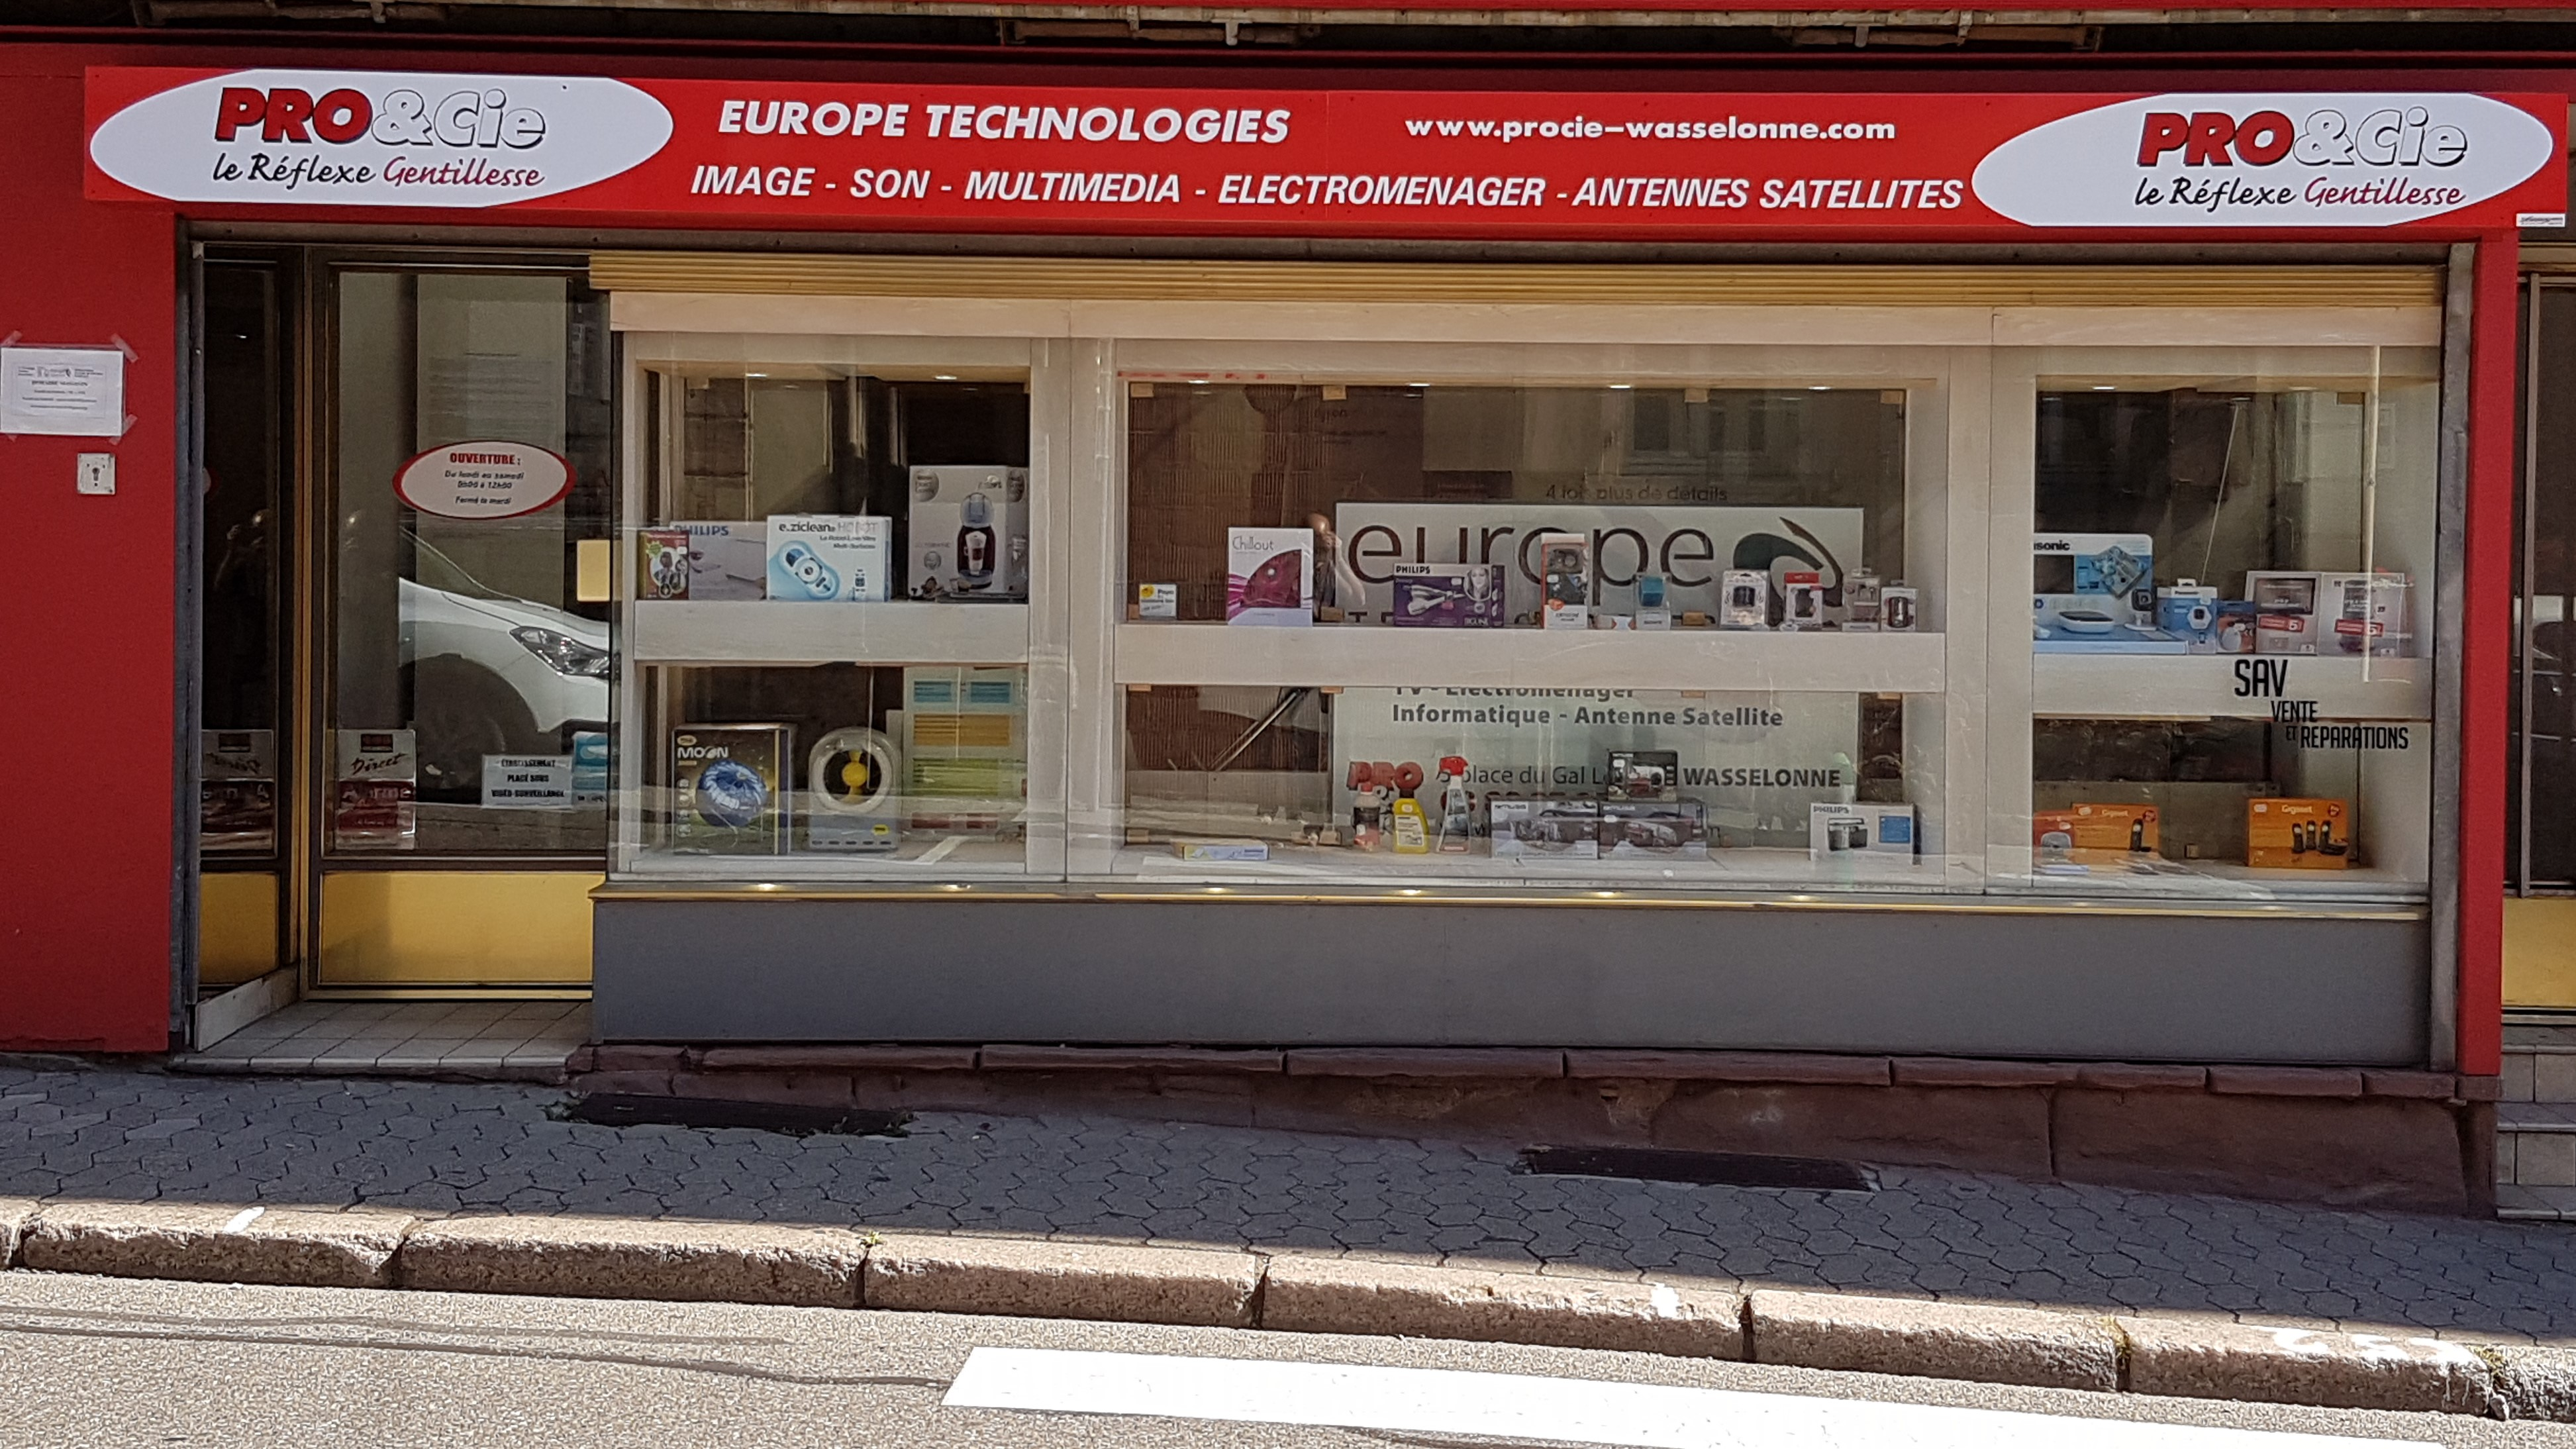 Electromenager Discount Bayonne Pro Cie Nos Magasins Pro Cie Sarl Europe Technologies 67310